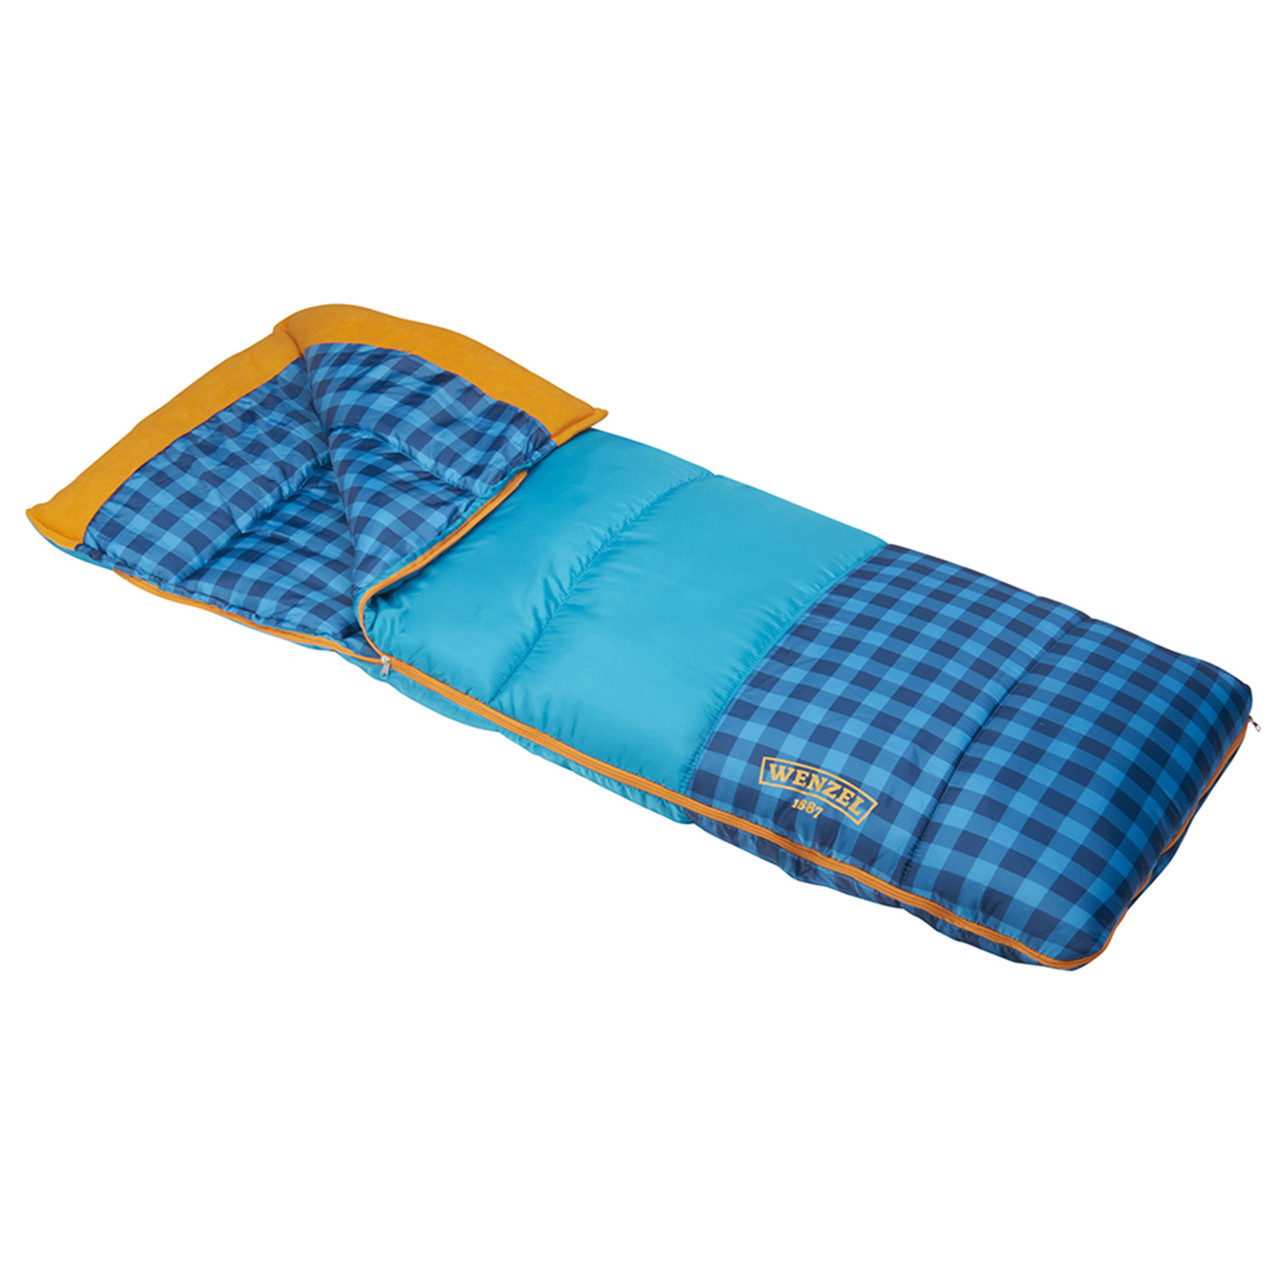 Wenzel Sapling Youth Sleeping Bag, blue, shown partially unzipped, side angle view